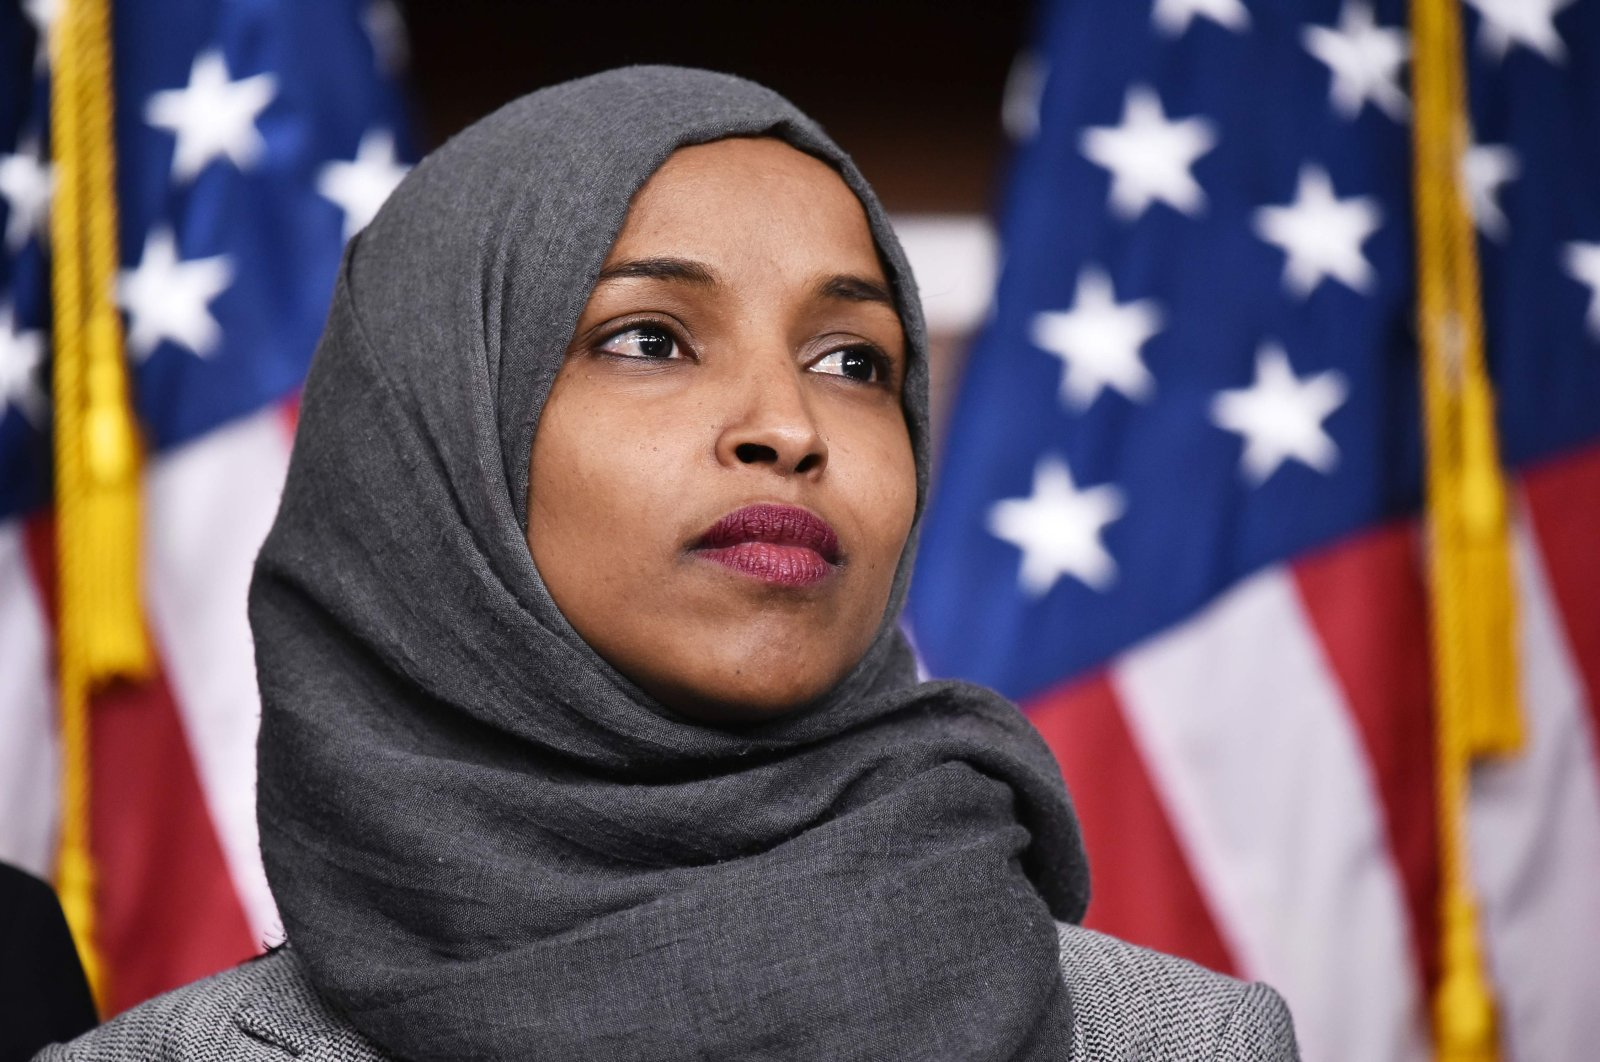 U.S. Rep. Ilhan Omar attends a press conference in the House Visitors Center at the U.S. Capitol, Washington, D.C., U.S., Nov. 30, 2018. (AFP Photo)